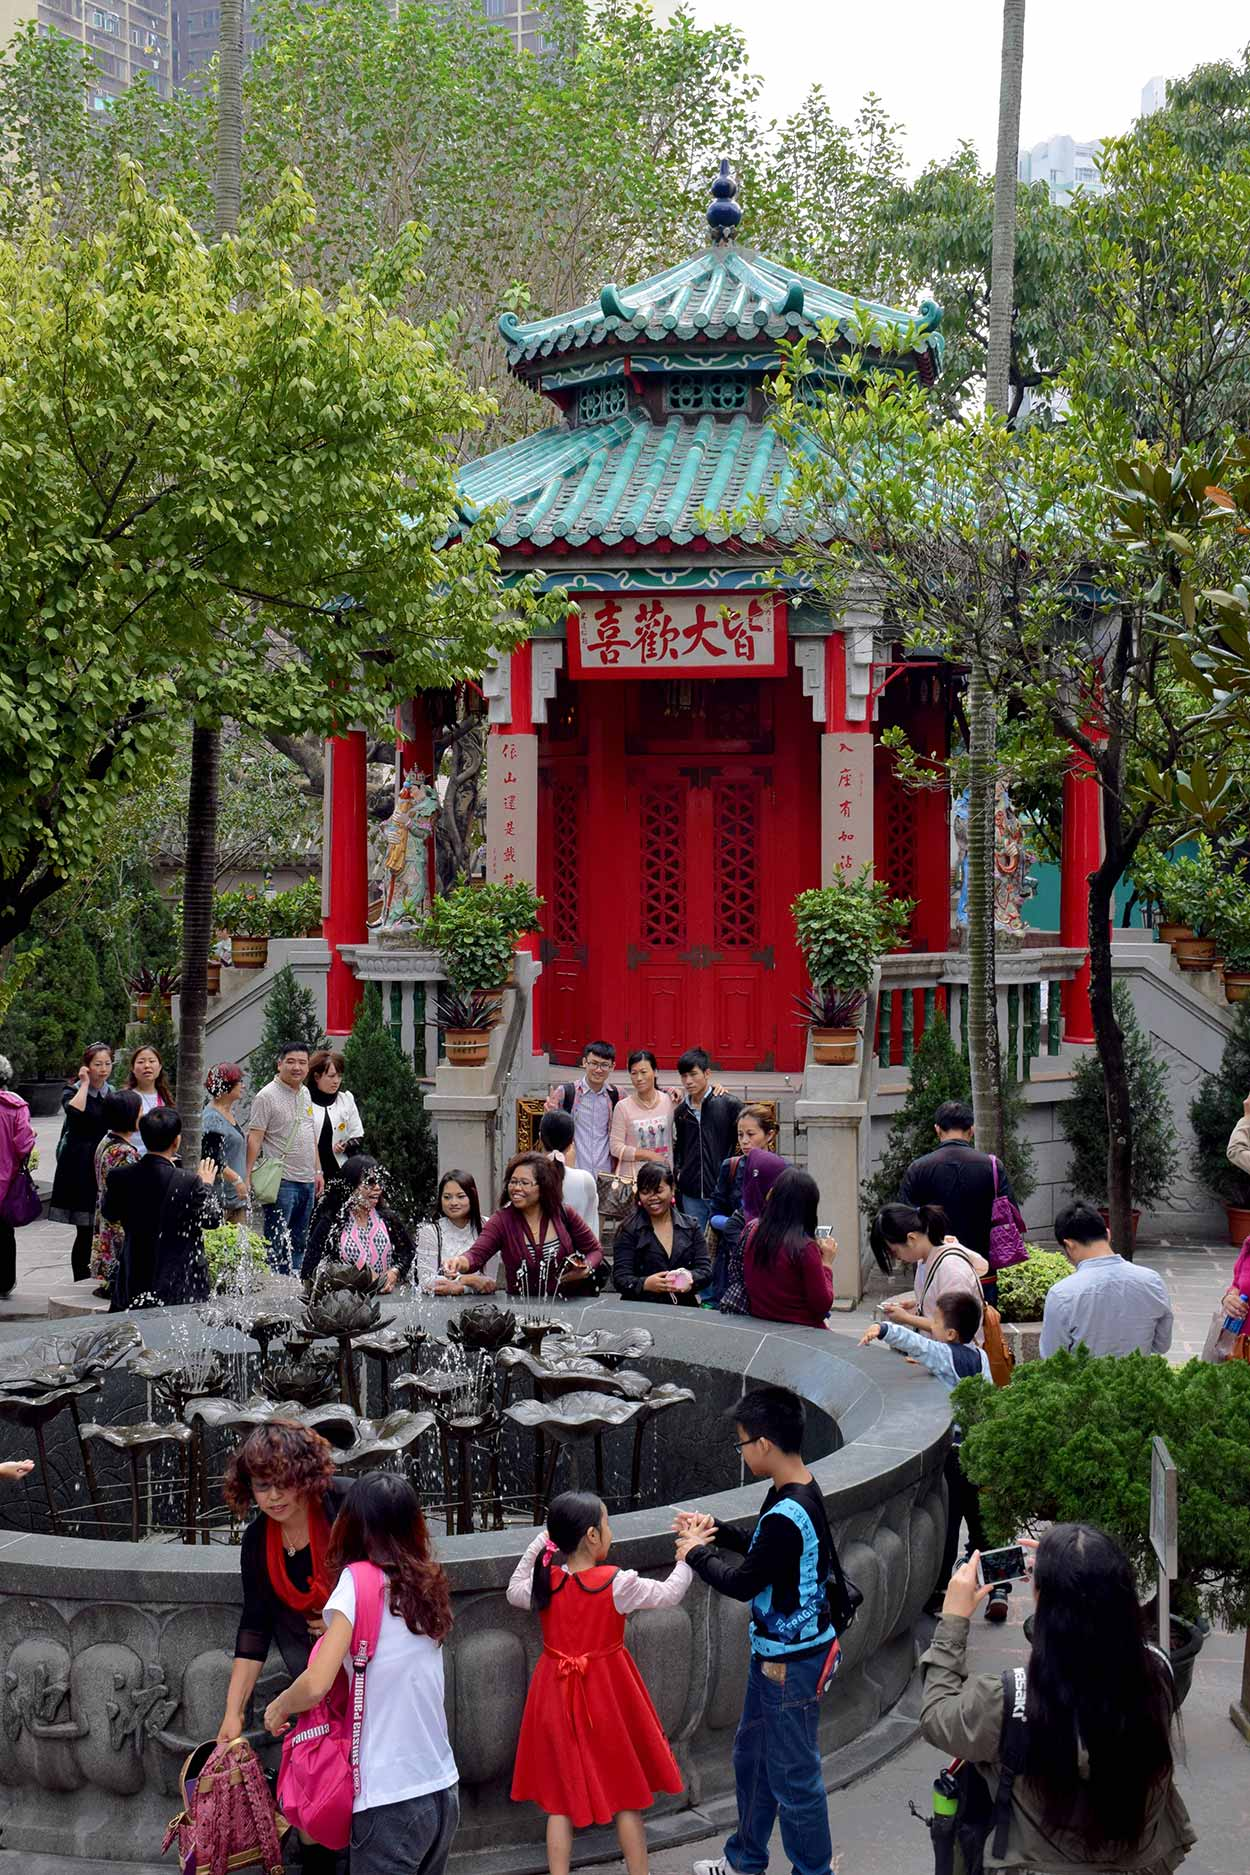 The Yuk Yik Fountain and the Yue Heung Shrine, Sik Sik Yuen Wong Tai Sin Temple, Hong Kong, China